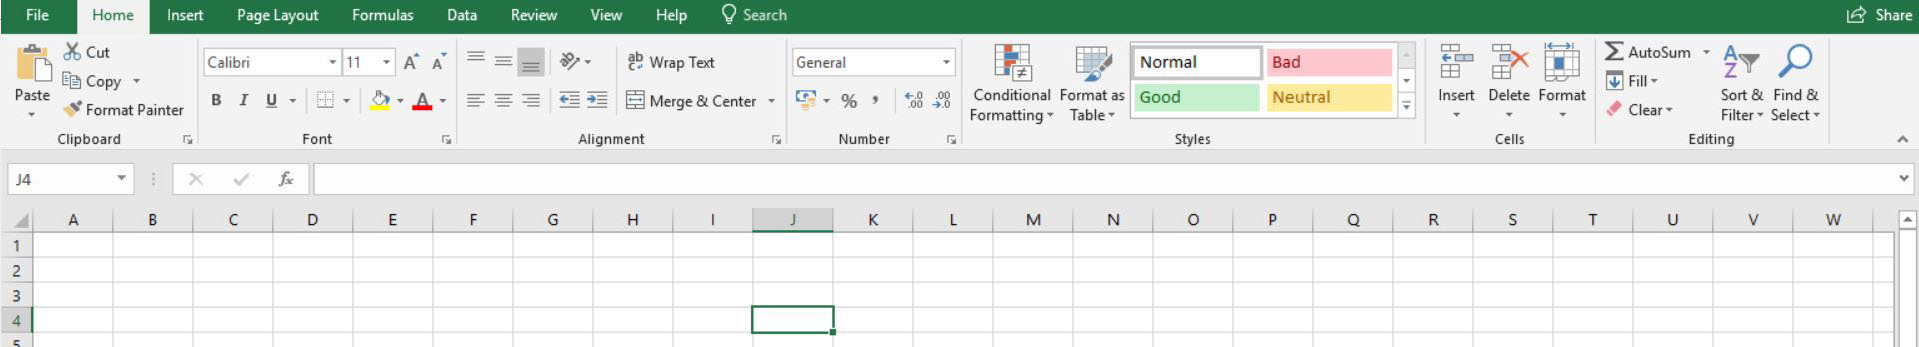 Free Excel Bookkeeping Templates - 10 Excel Templates